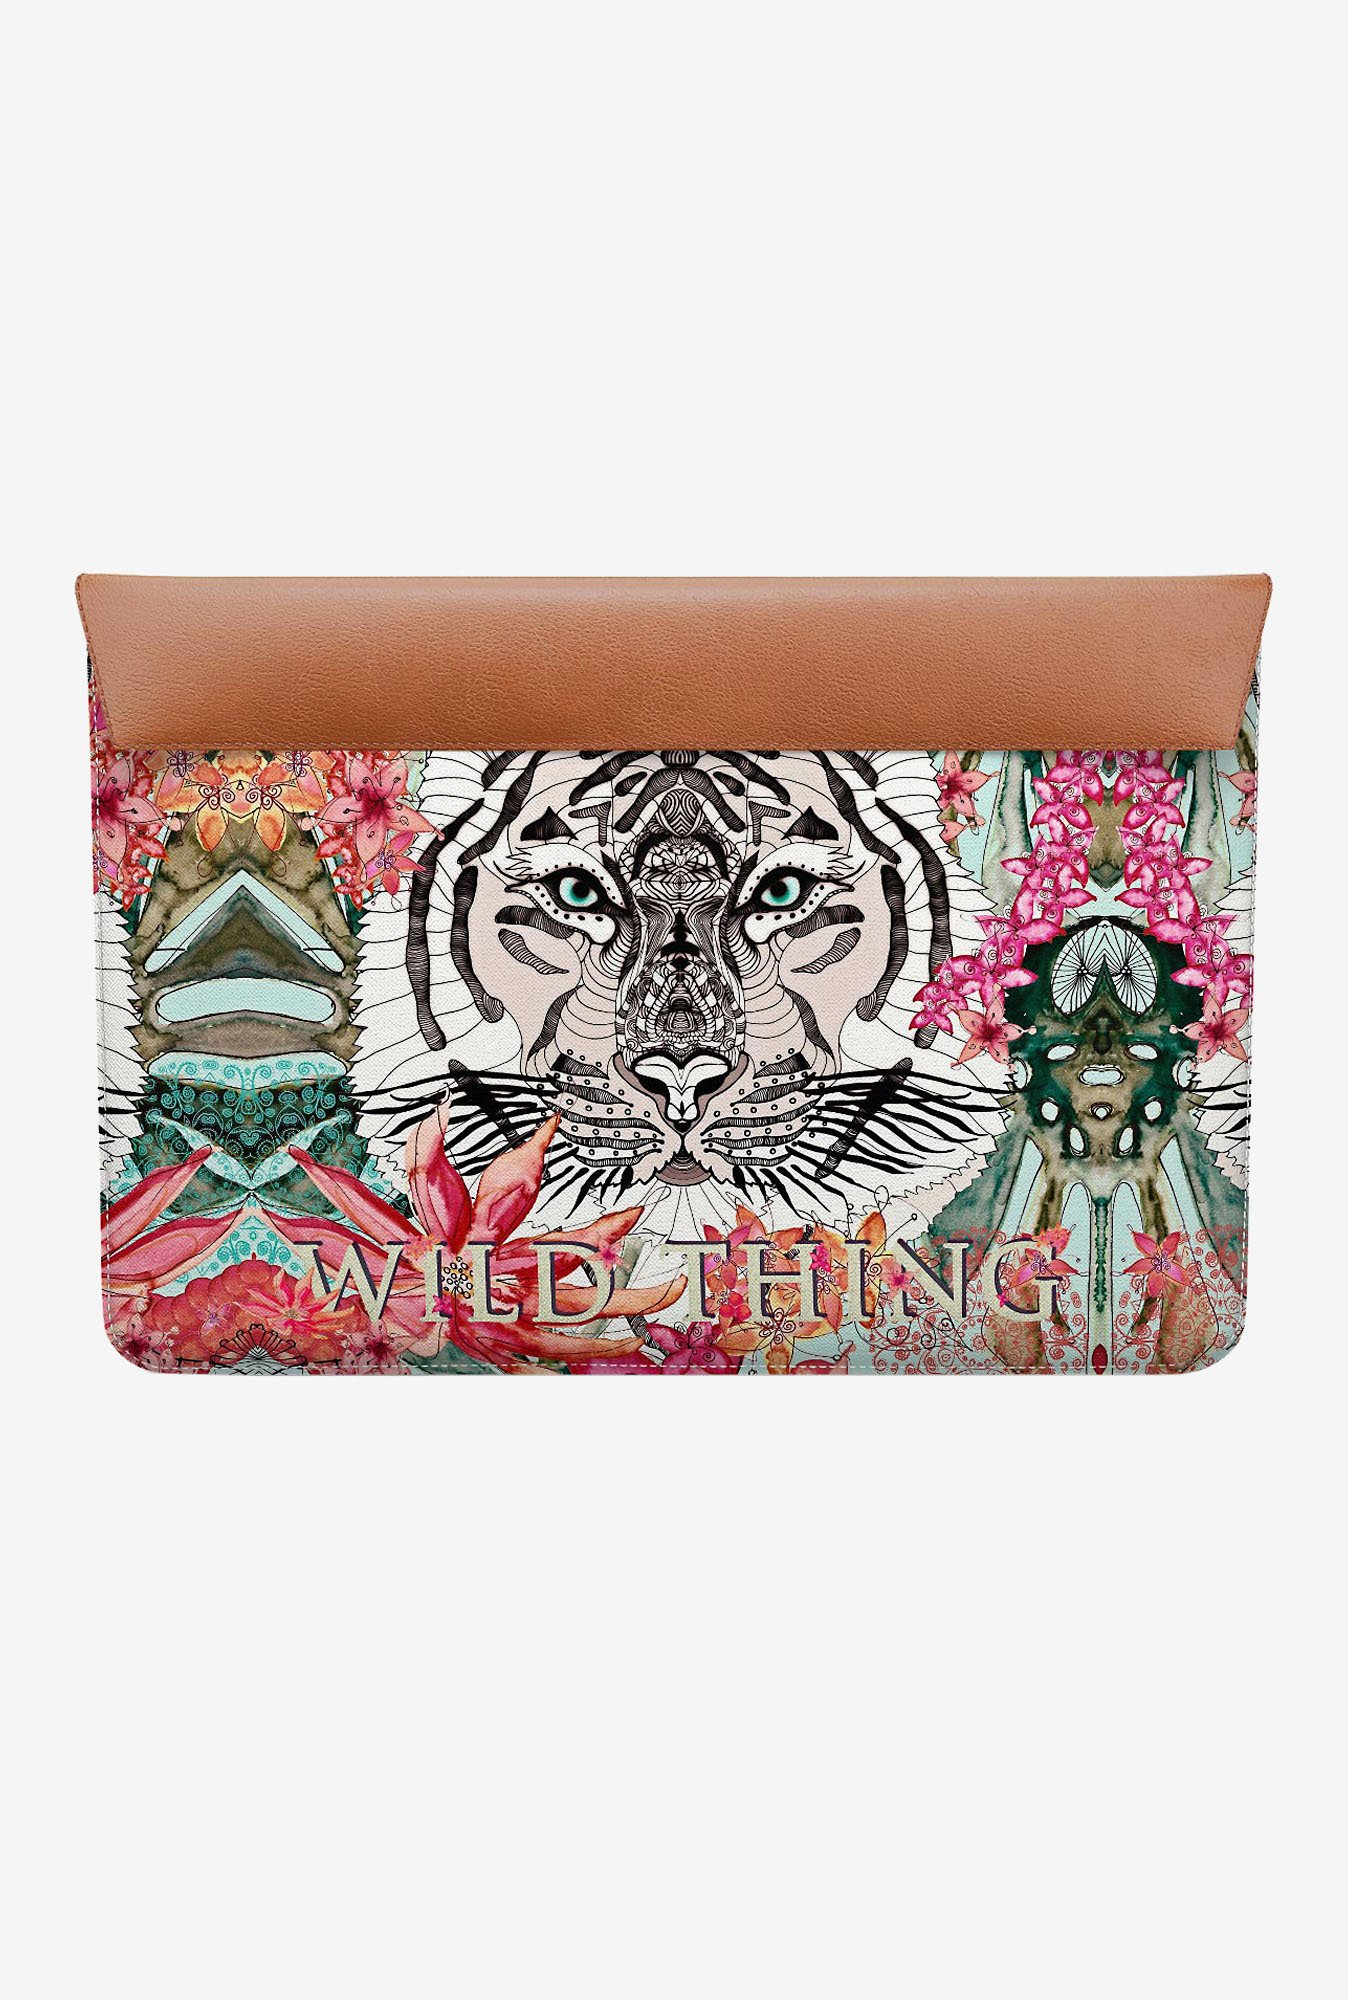 DailyObjects Wild Thing MacBook Pro 13 Envelope Sleeve